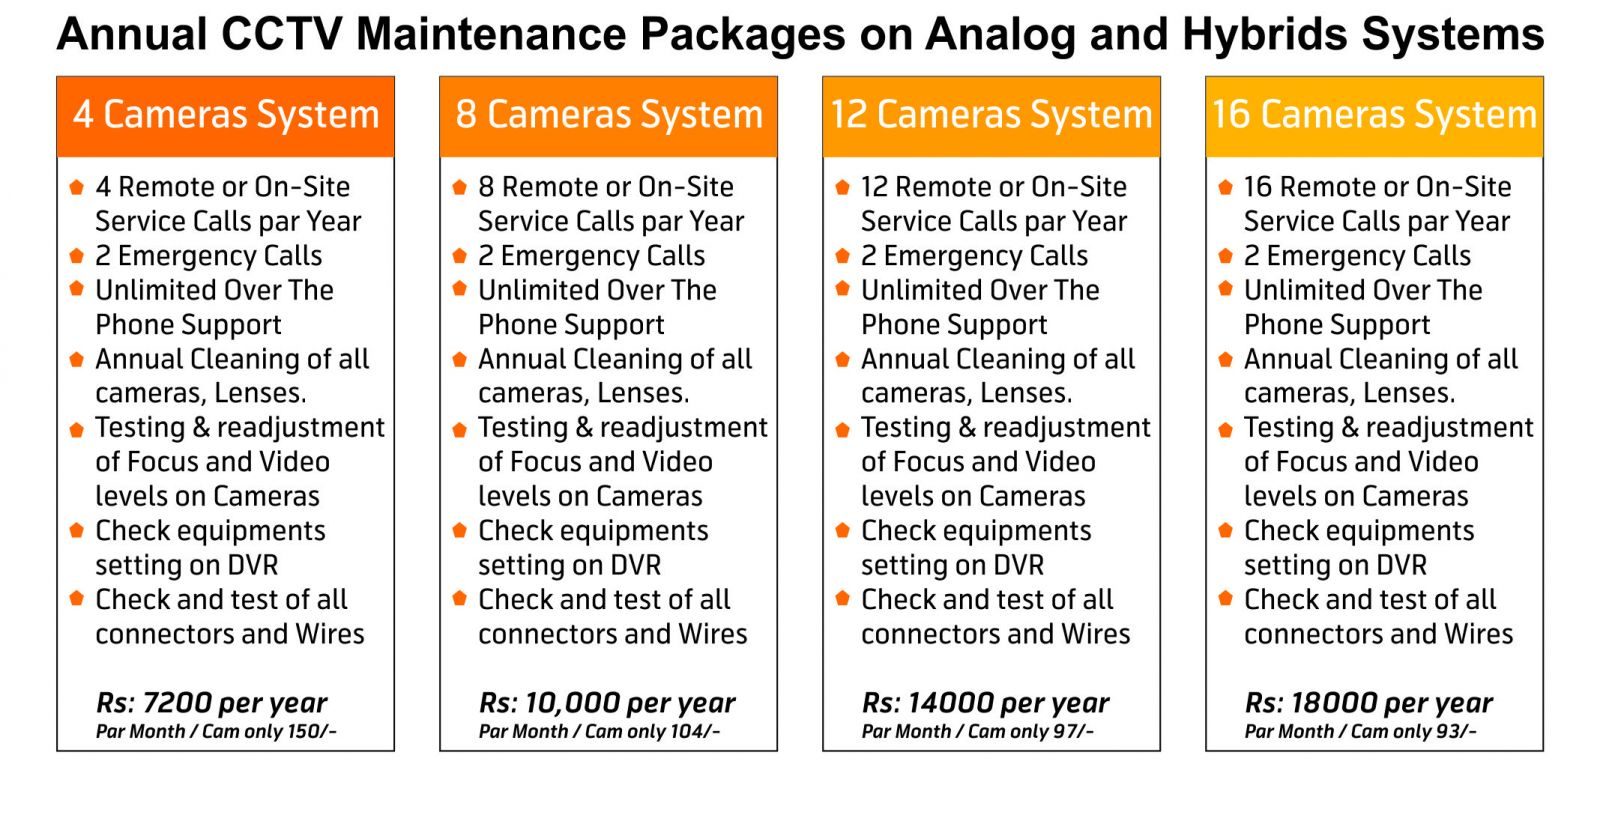 cctv annual maintenance services contract packages